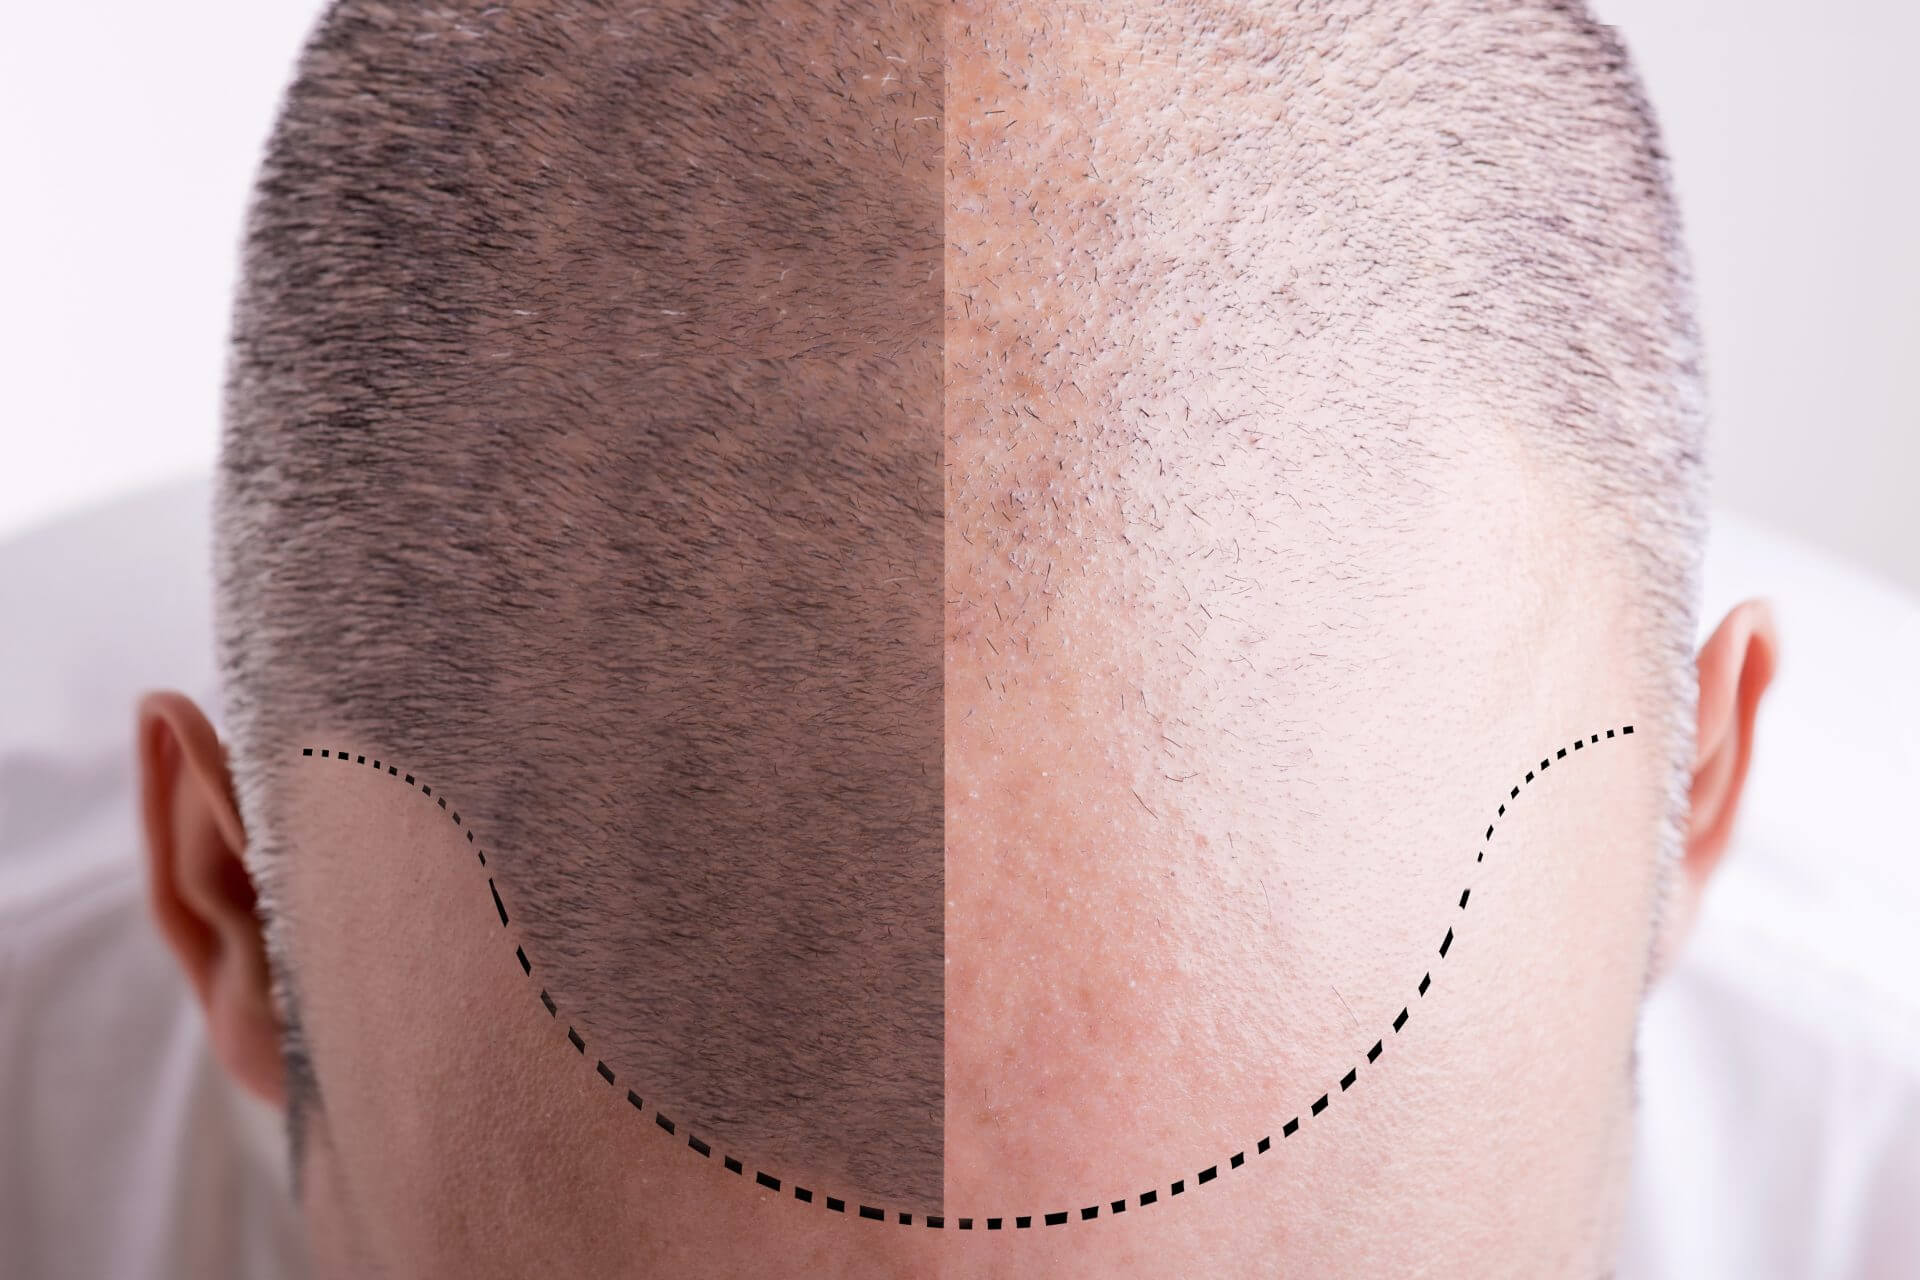 Is hair transplantation permanent